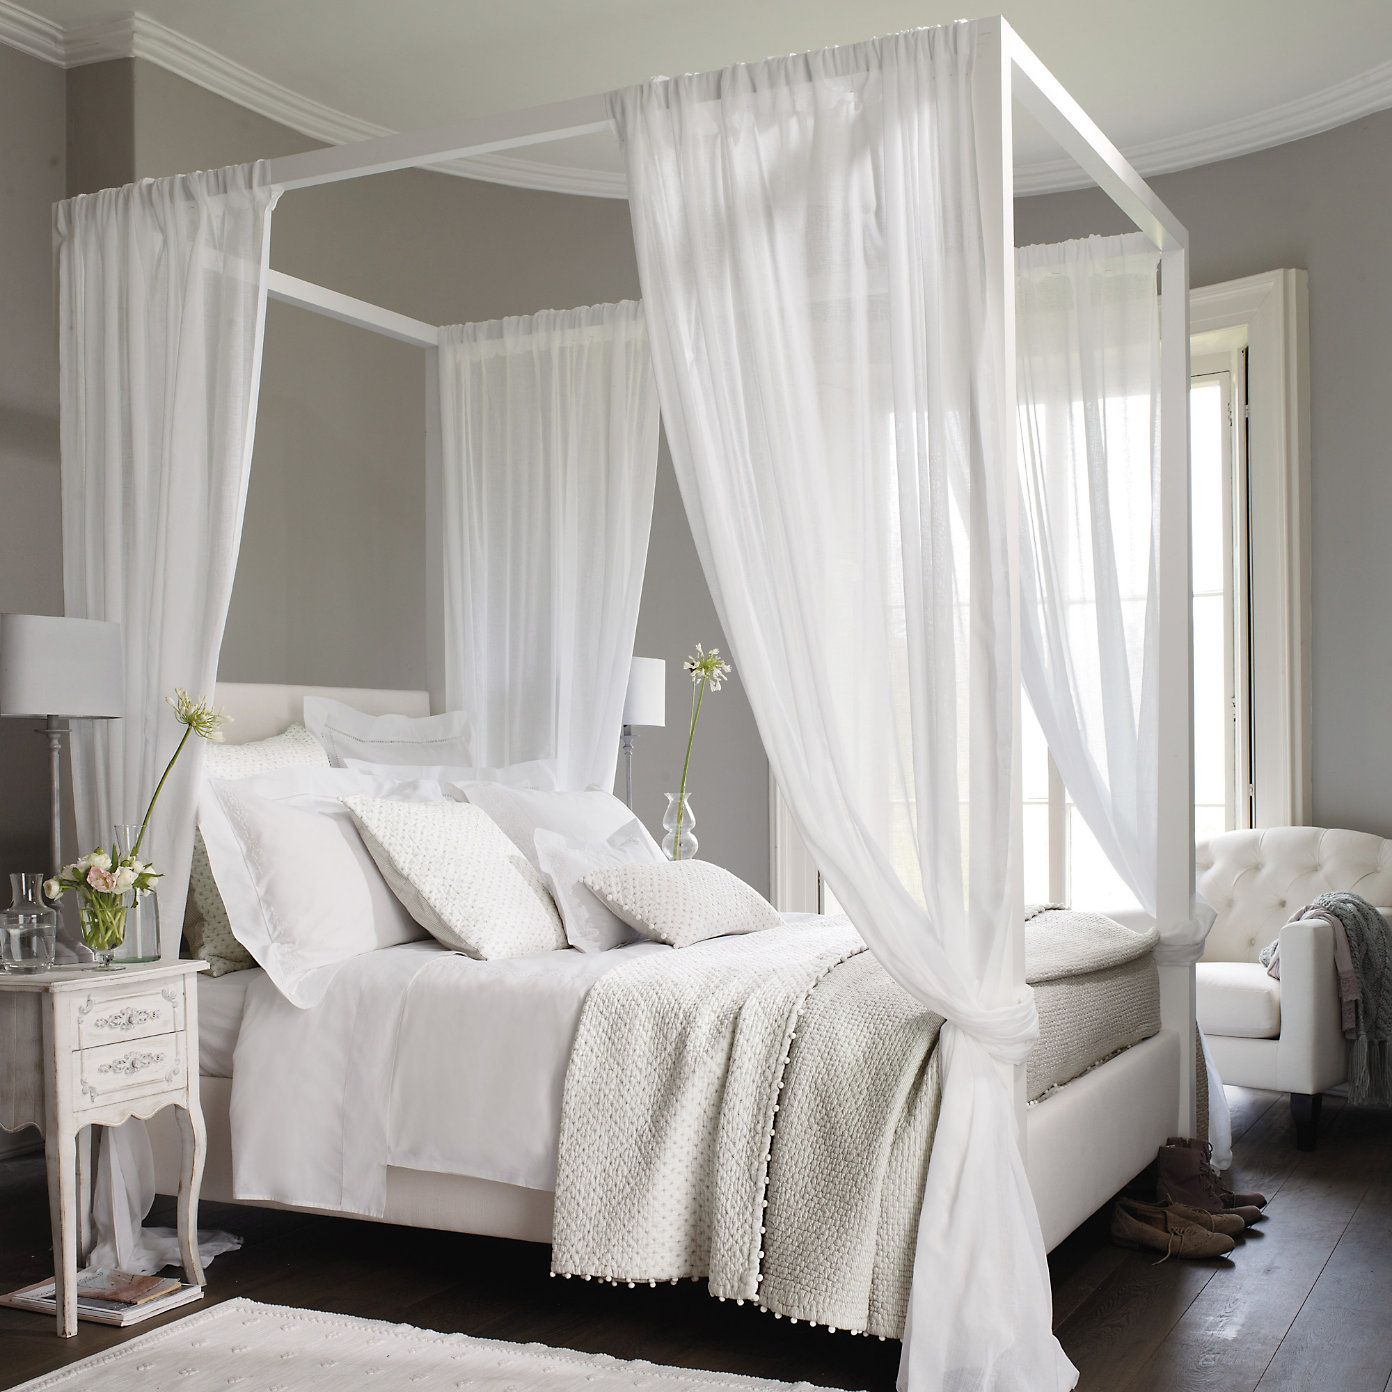 Brittany Quilt Cushion Cover The White Company Canopy Bedroom Bed Design Poster Bed Canopy